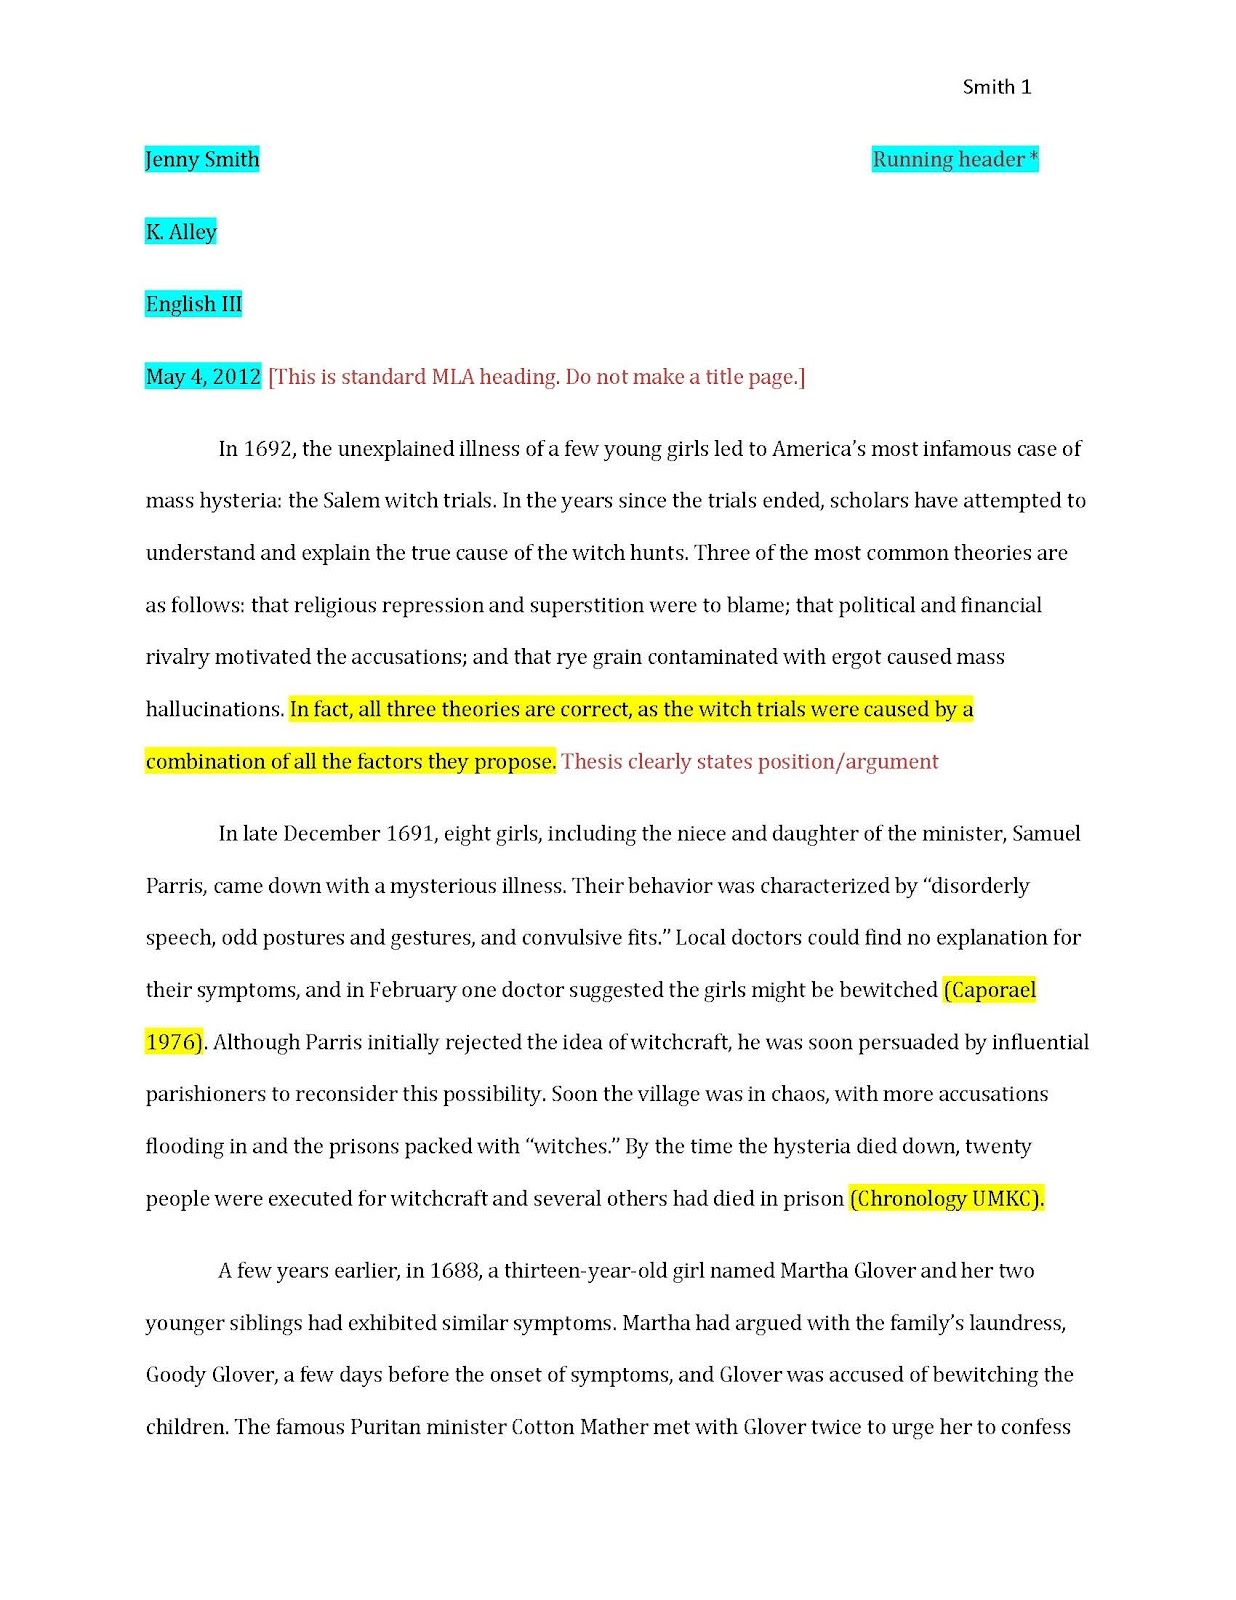 010 Examplepaper Page 1 How To Quote An Article In Essay Impressive Reference Apa Title Online Full